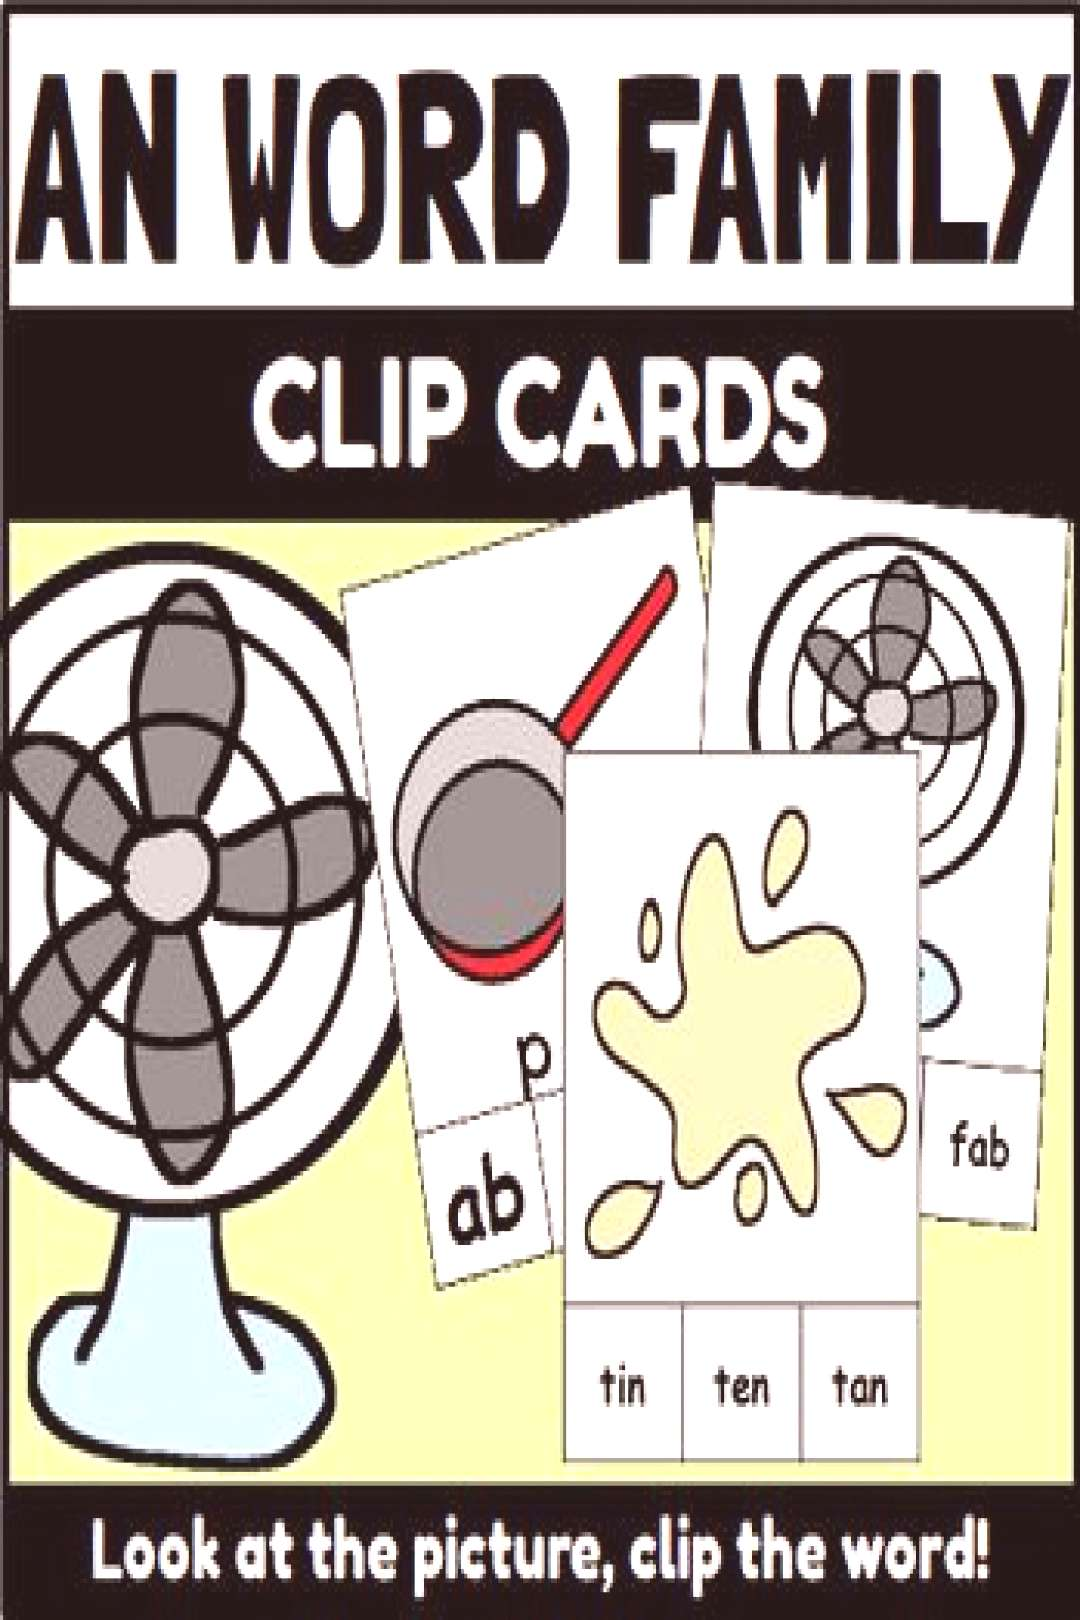 AN Word Family Clip Cards AN Word Family Clip Cards - look at the picture and clip the word that ma